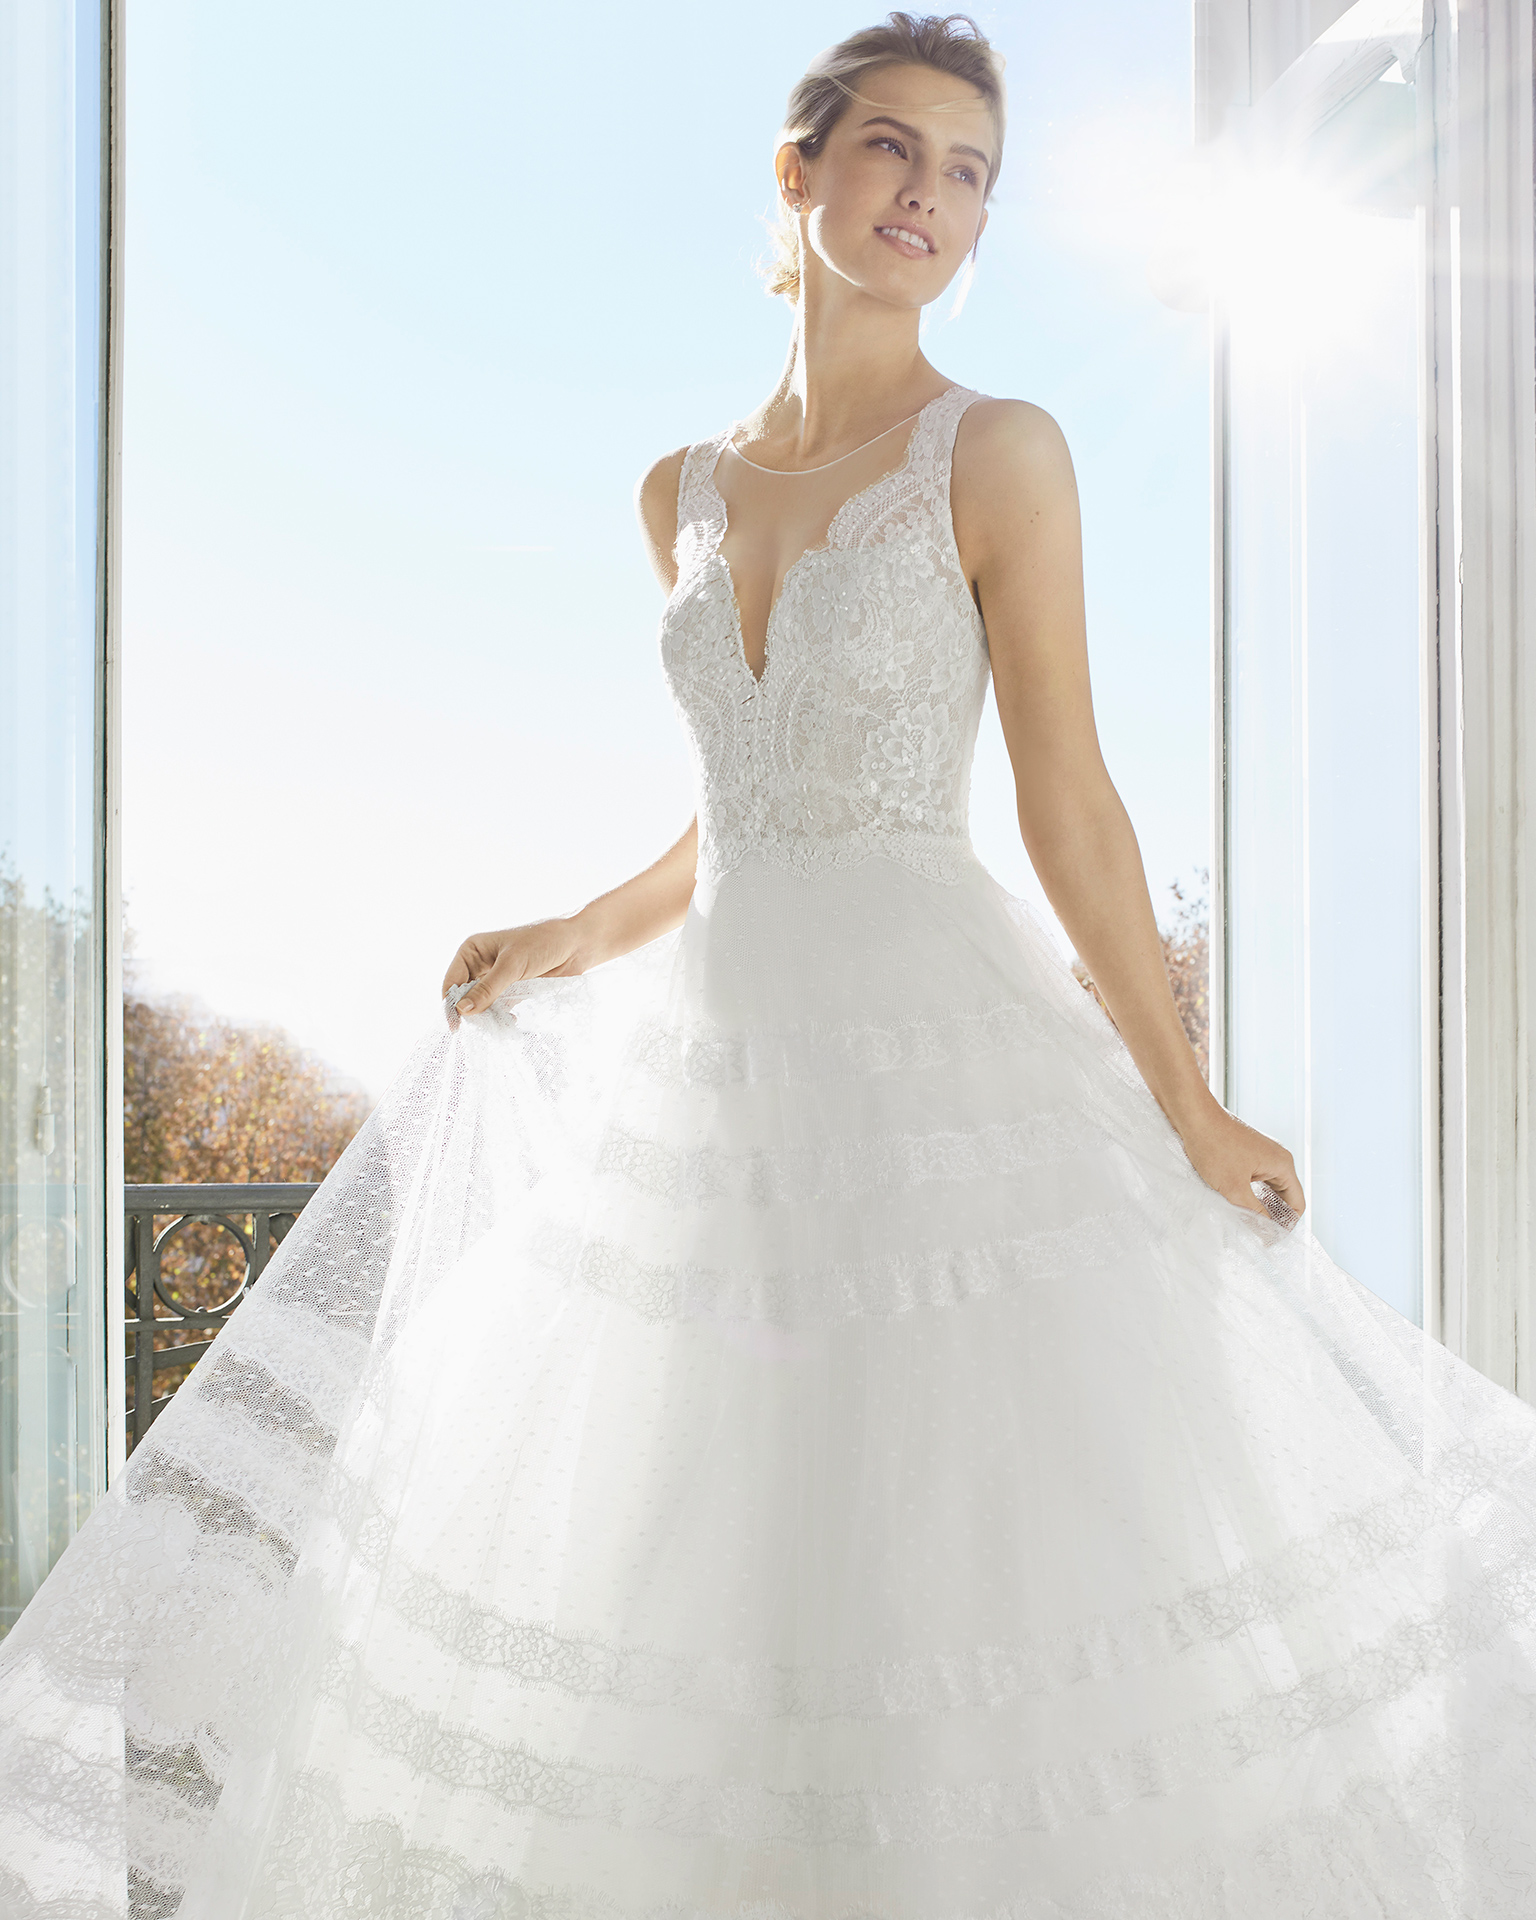 Robe de mariée style trapèze en dentelle et pierreries. Décolleté plongeant et dos en V et transparences. Disponible en couleur naturelle. Collection AIRE BARCELONA 2019.